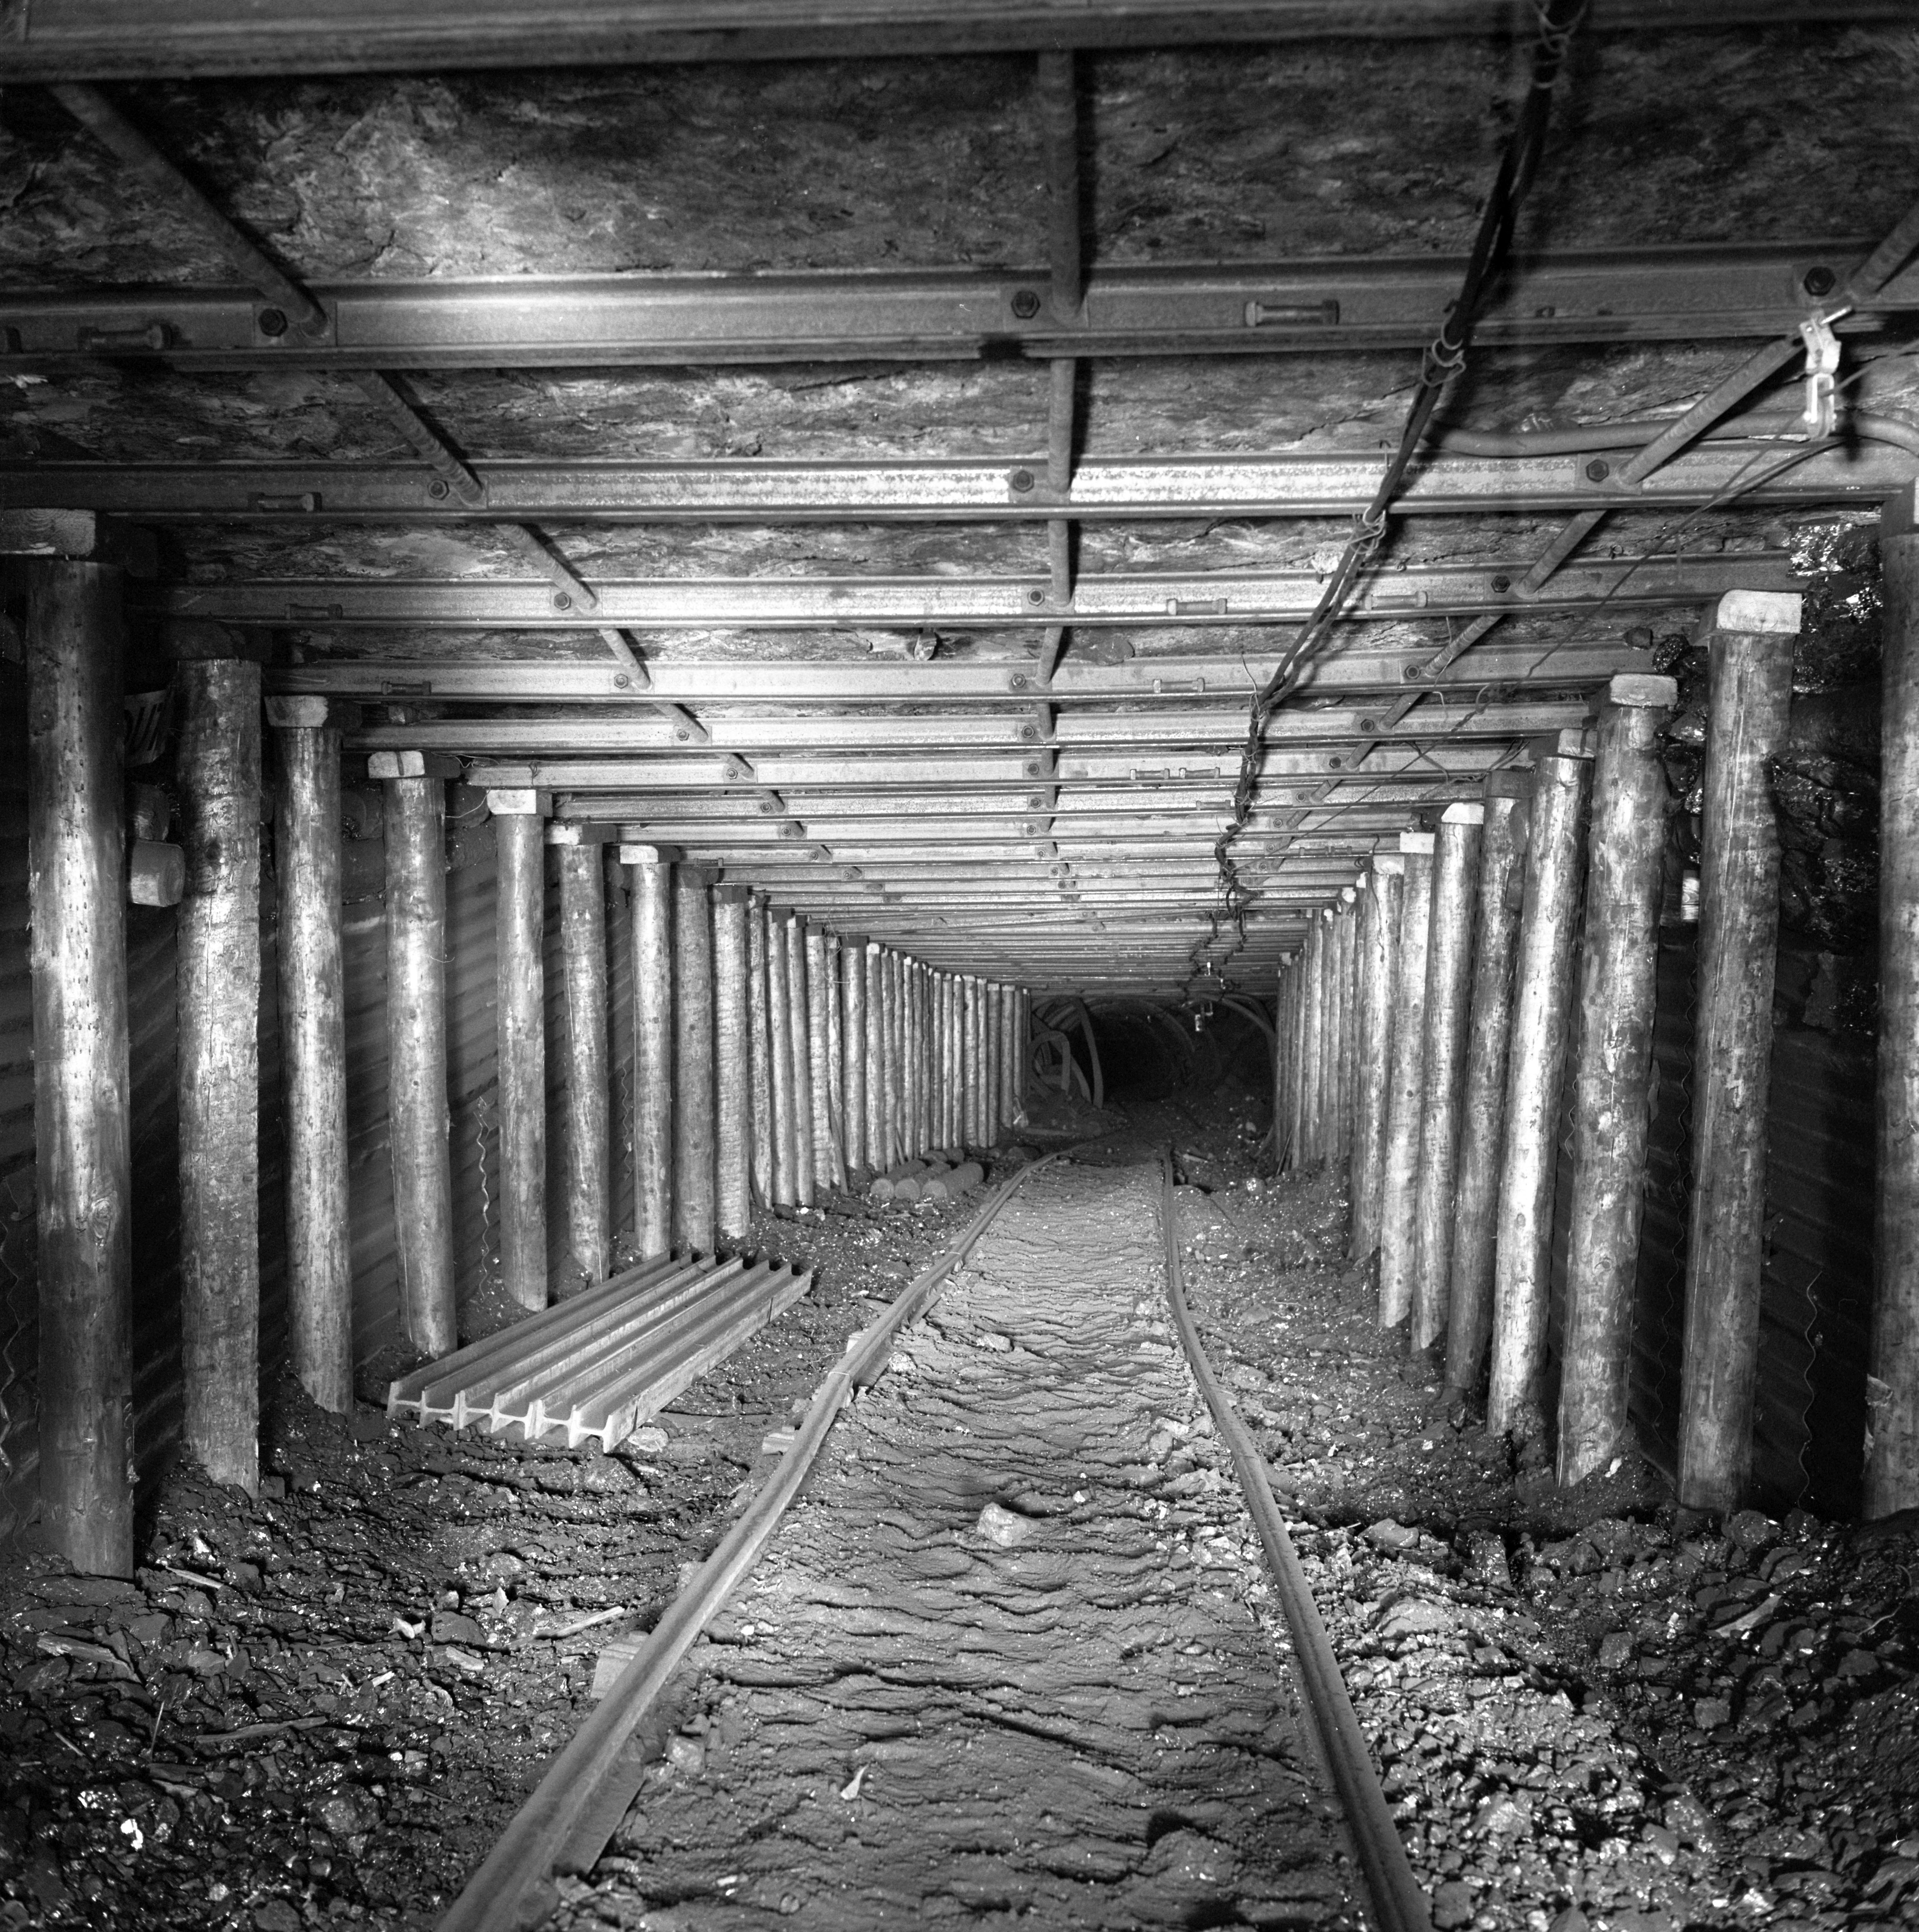 Cwmgwili Colliery, a completed drivage supported by timber, 1978